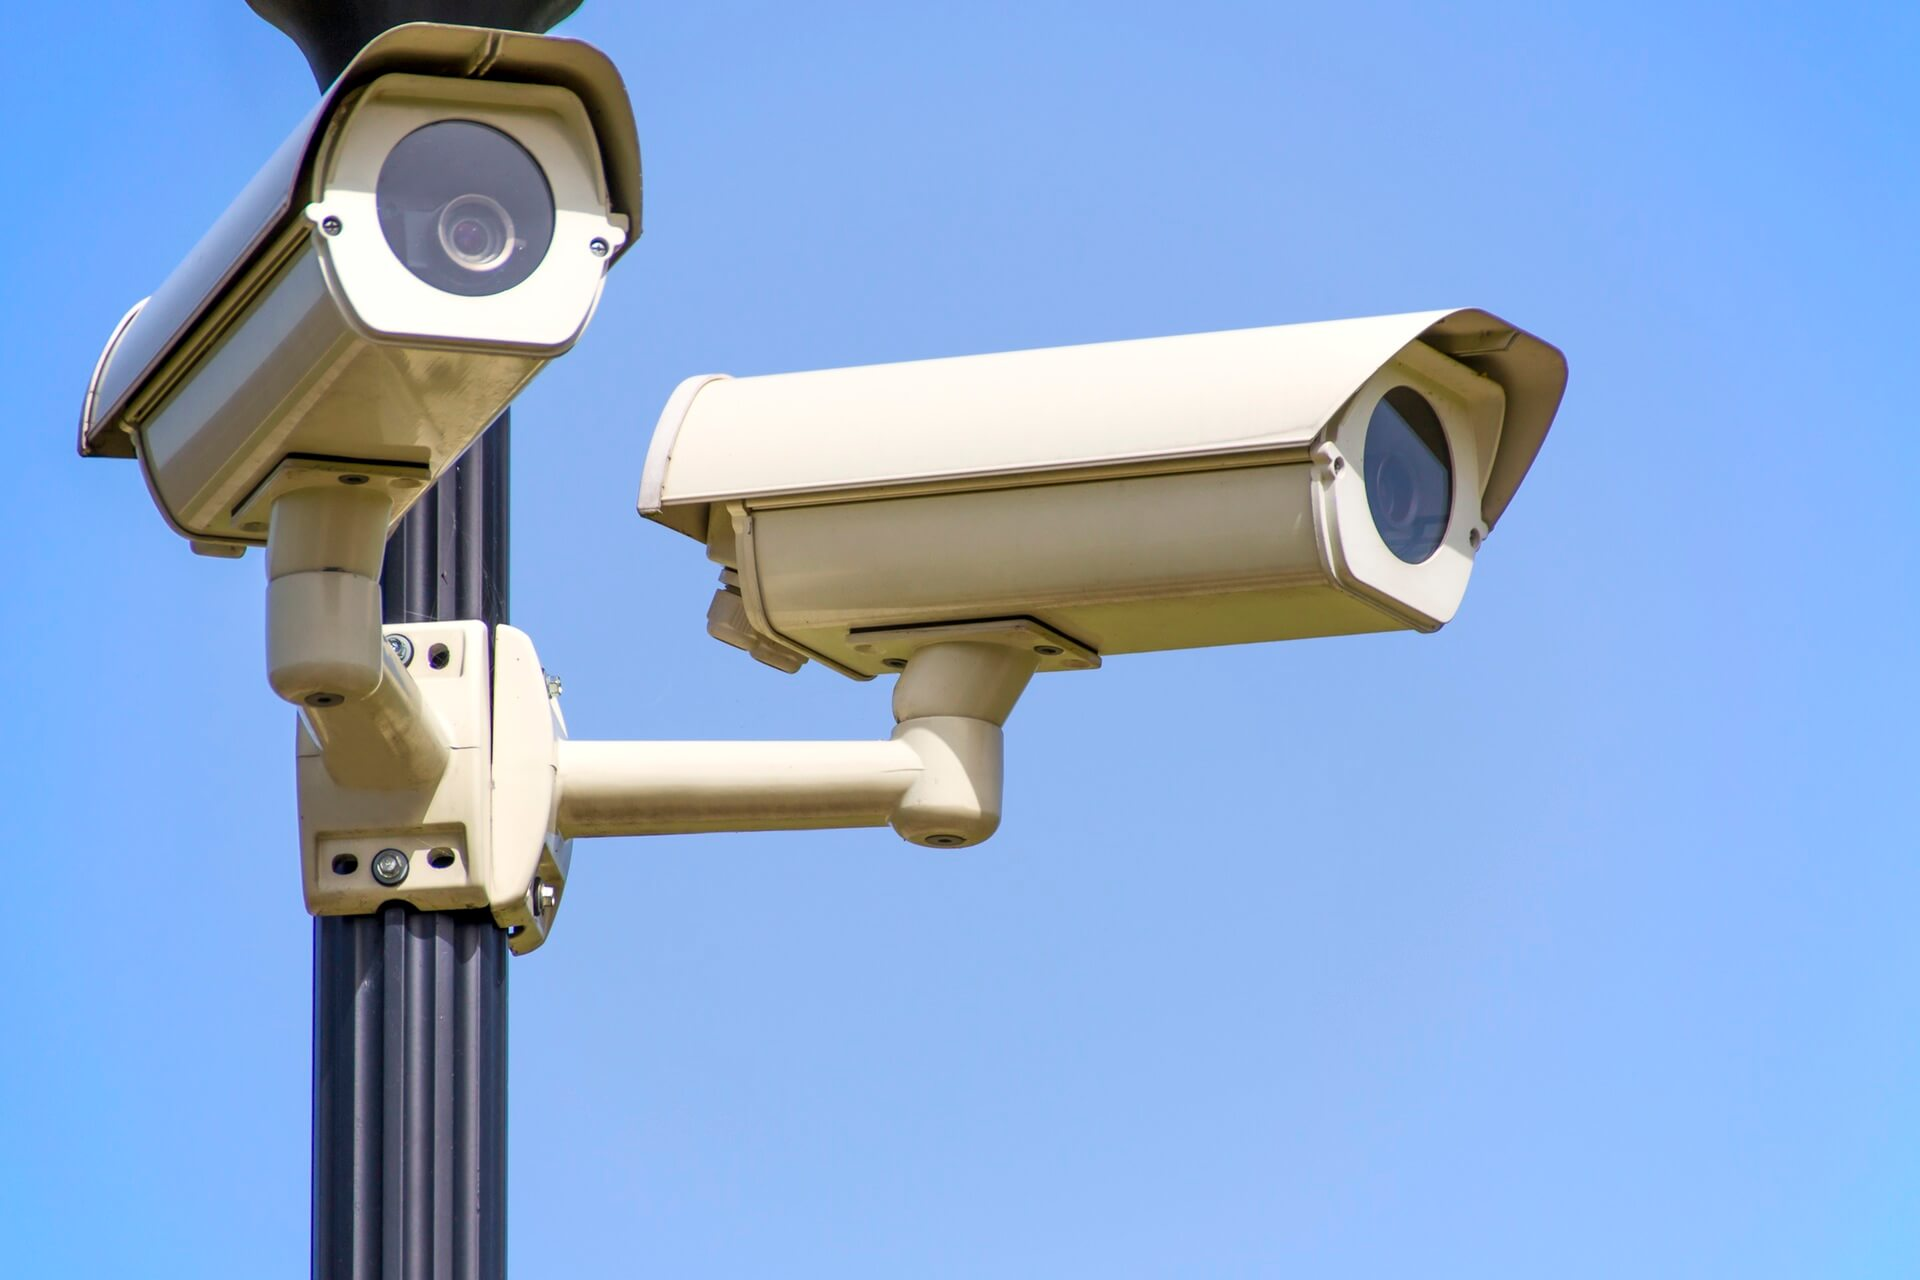 Cctv Home The Importance Of Installing A Cctv In Your Home Nai